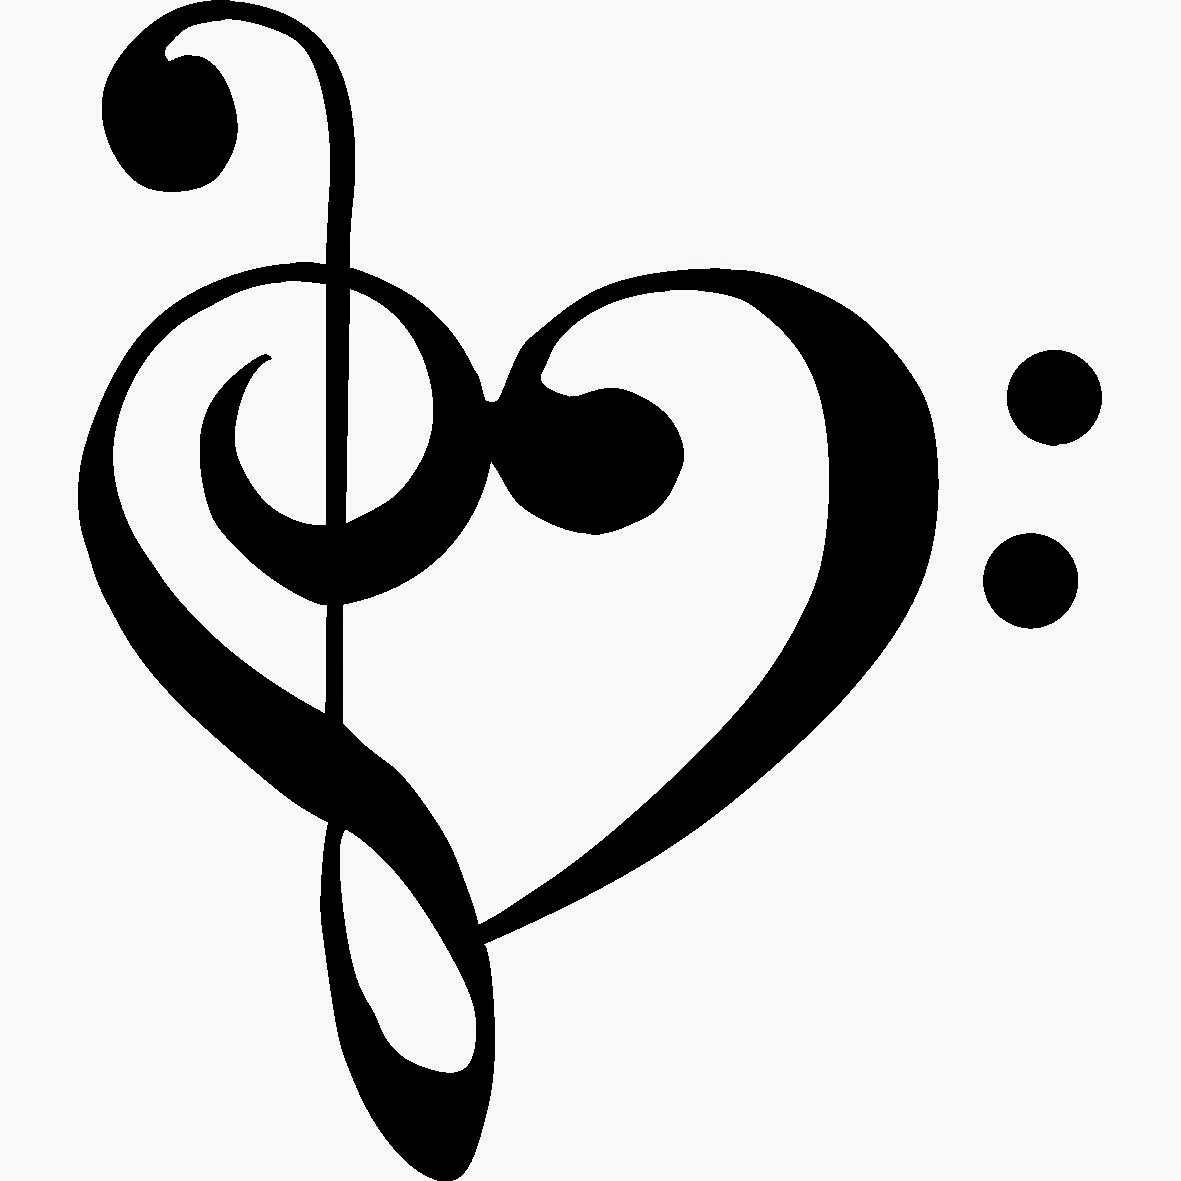 1181x1181 Music Notes Heart Free Wallpaper I Hd Images